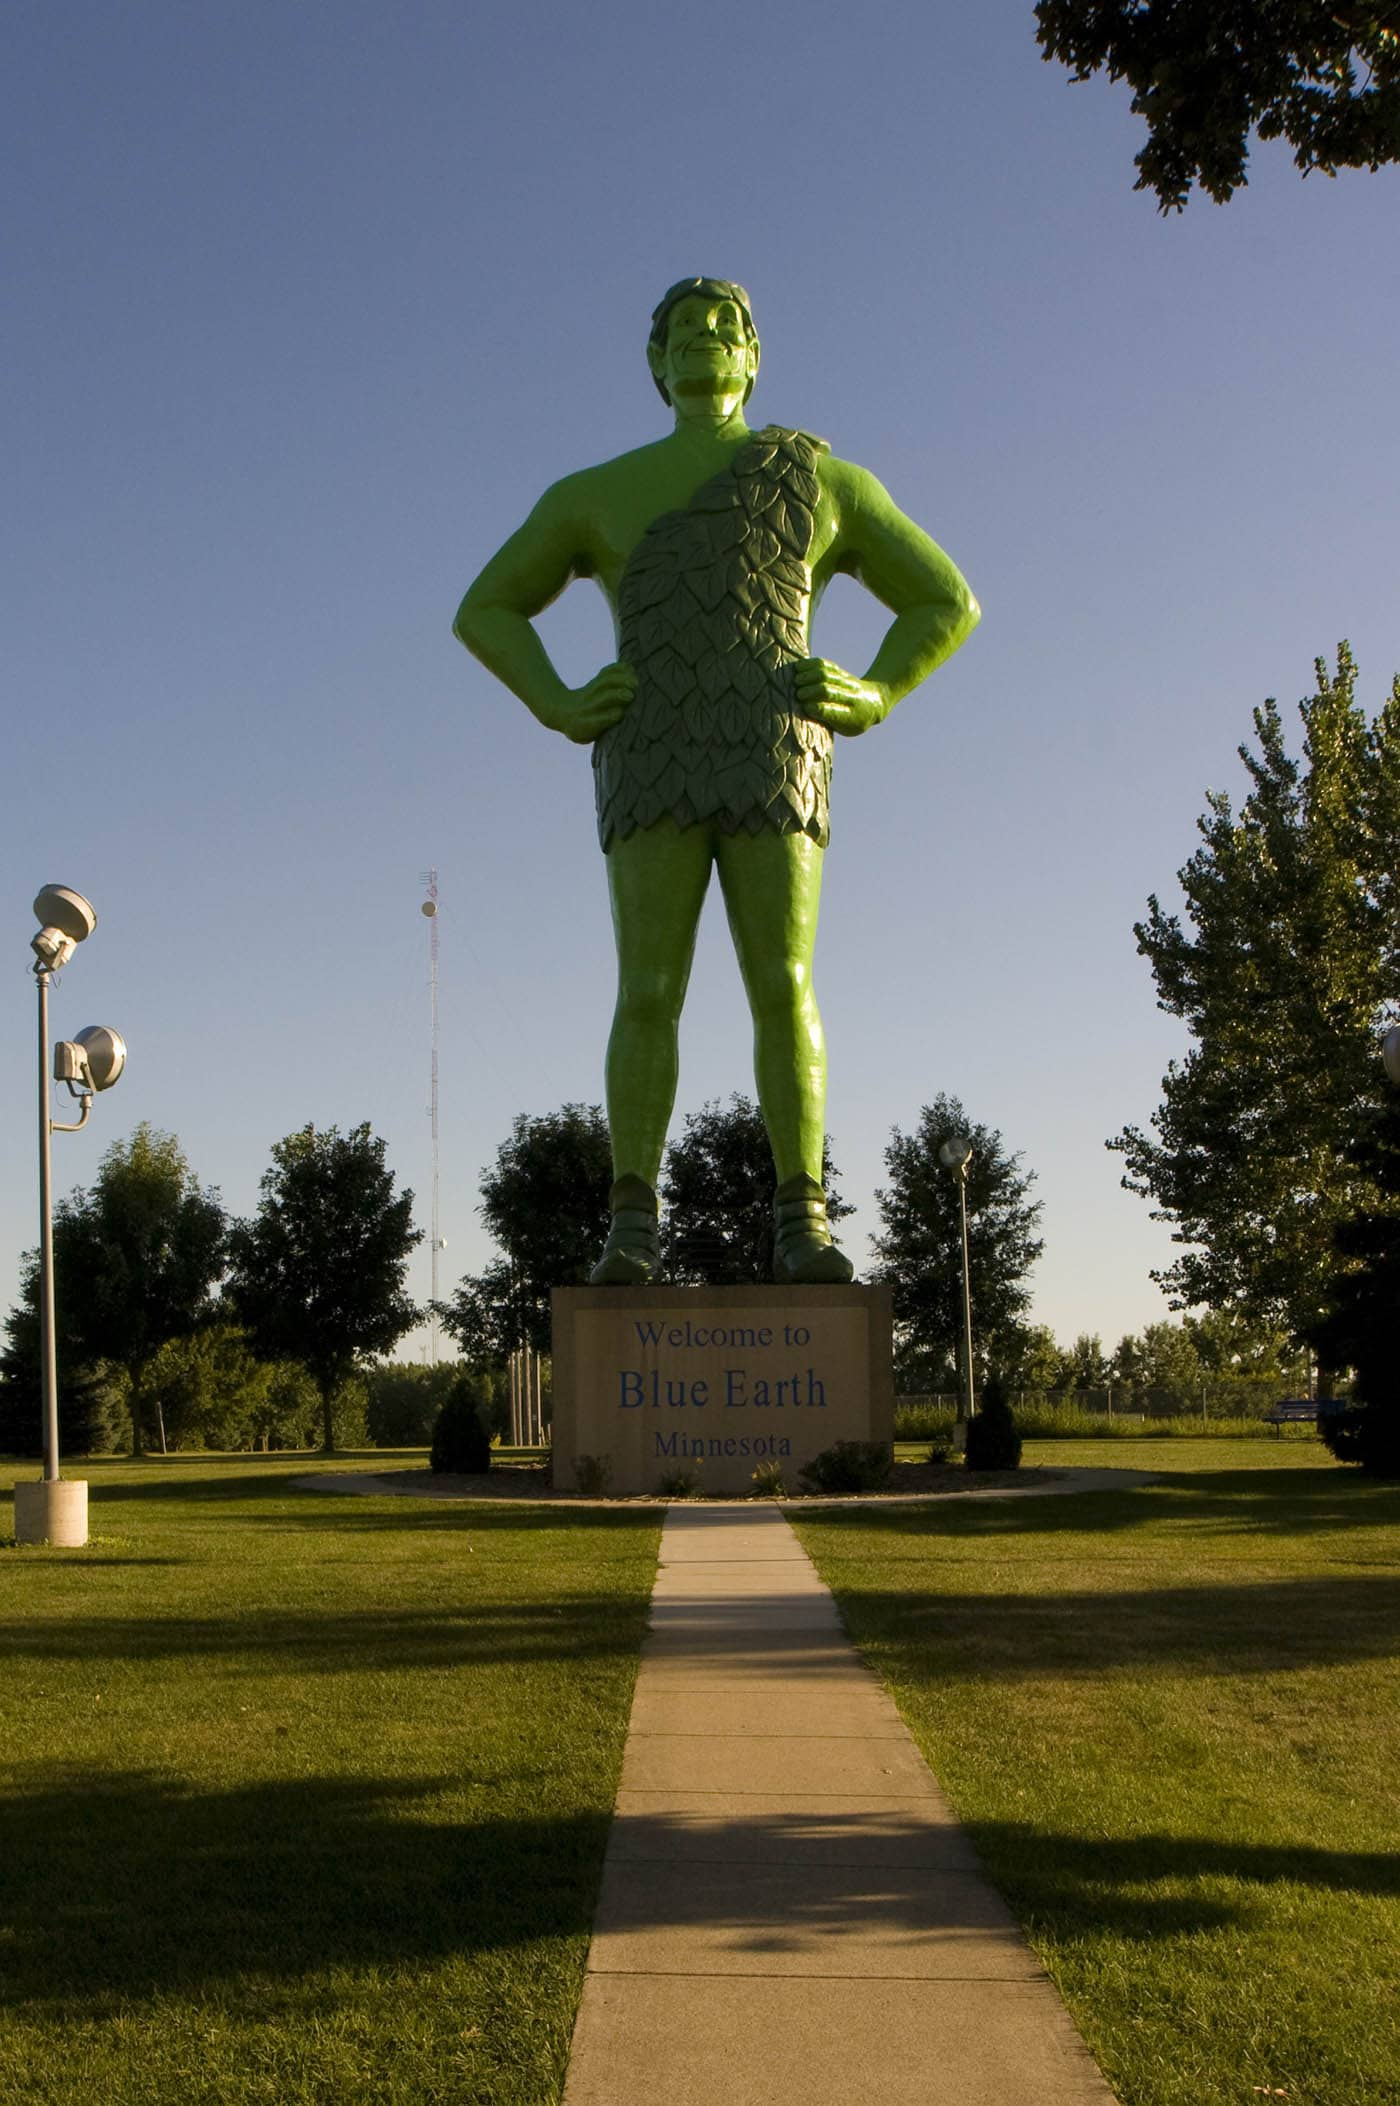 Jolly Green Giant Statue roadside attraction in Blue Earth, Minnesota. Labor Day Chicago to Mount Rushmore Road Trip.